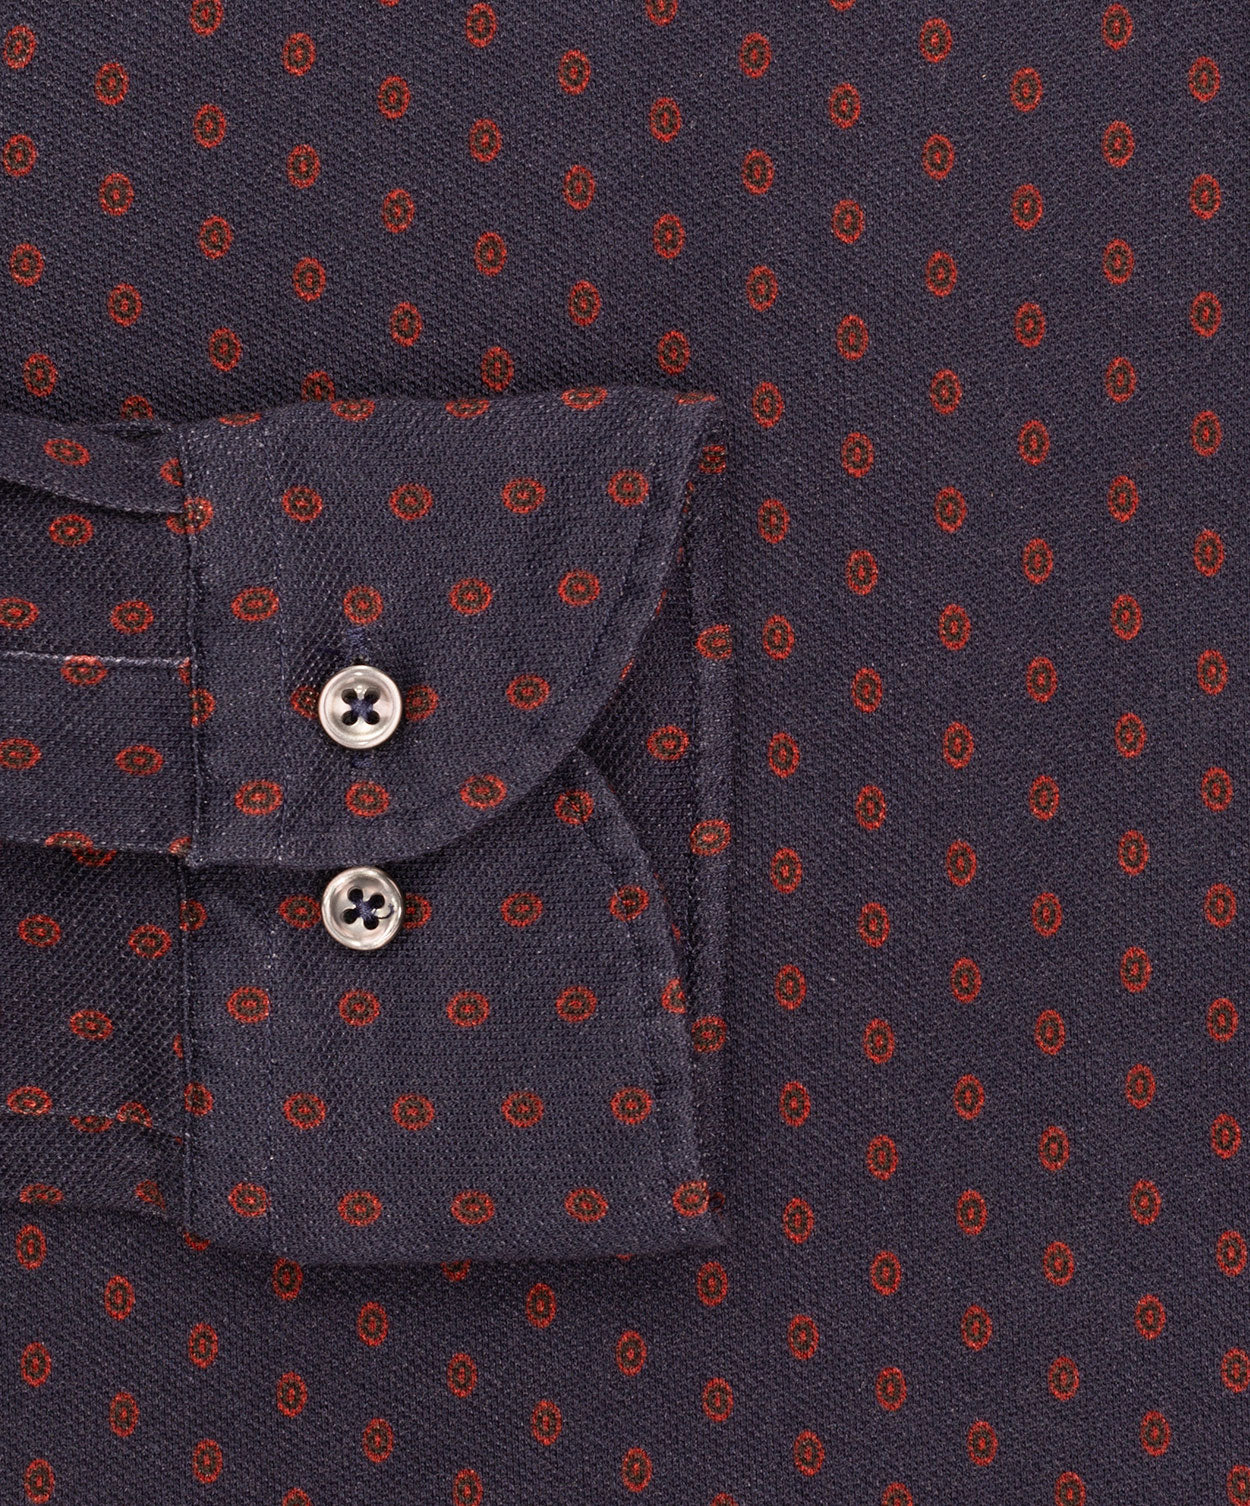 Henry Carbon/Camel/Wine Dark Ground Dotted Print Jersey Shirt